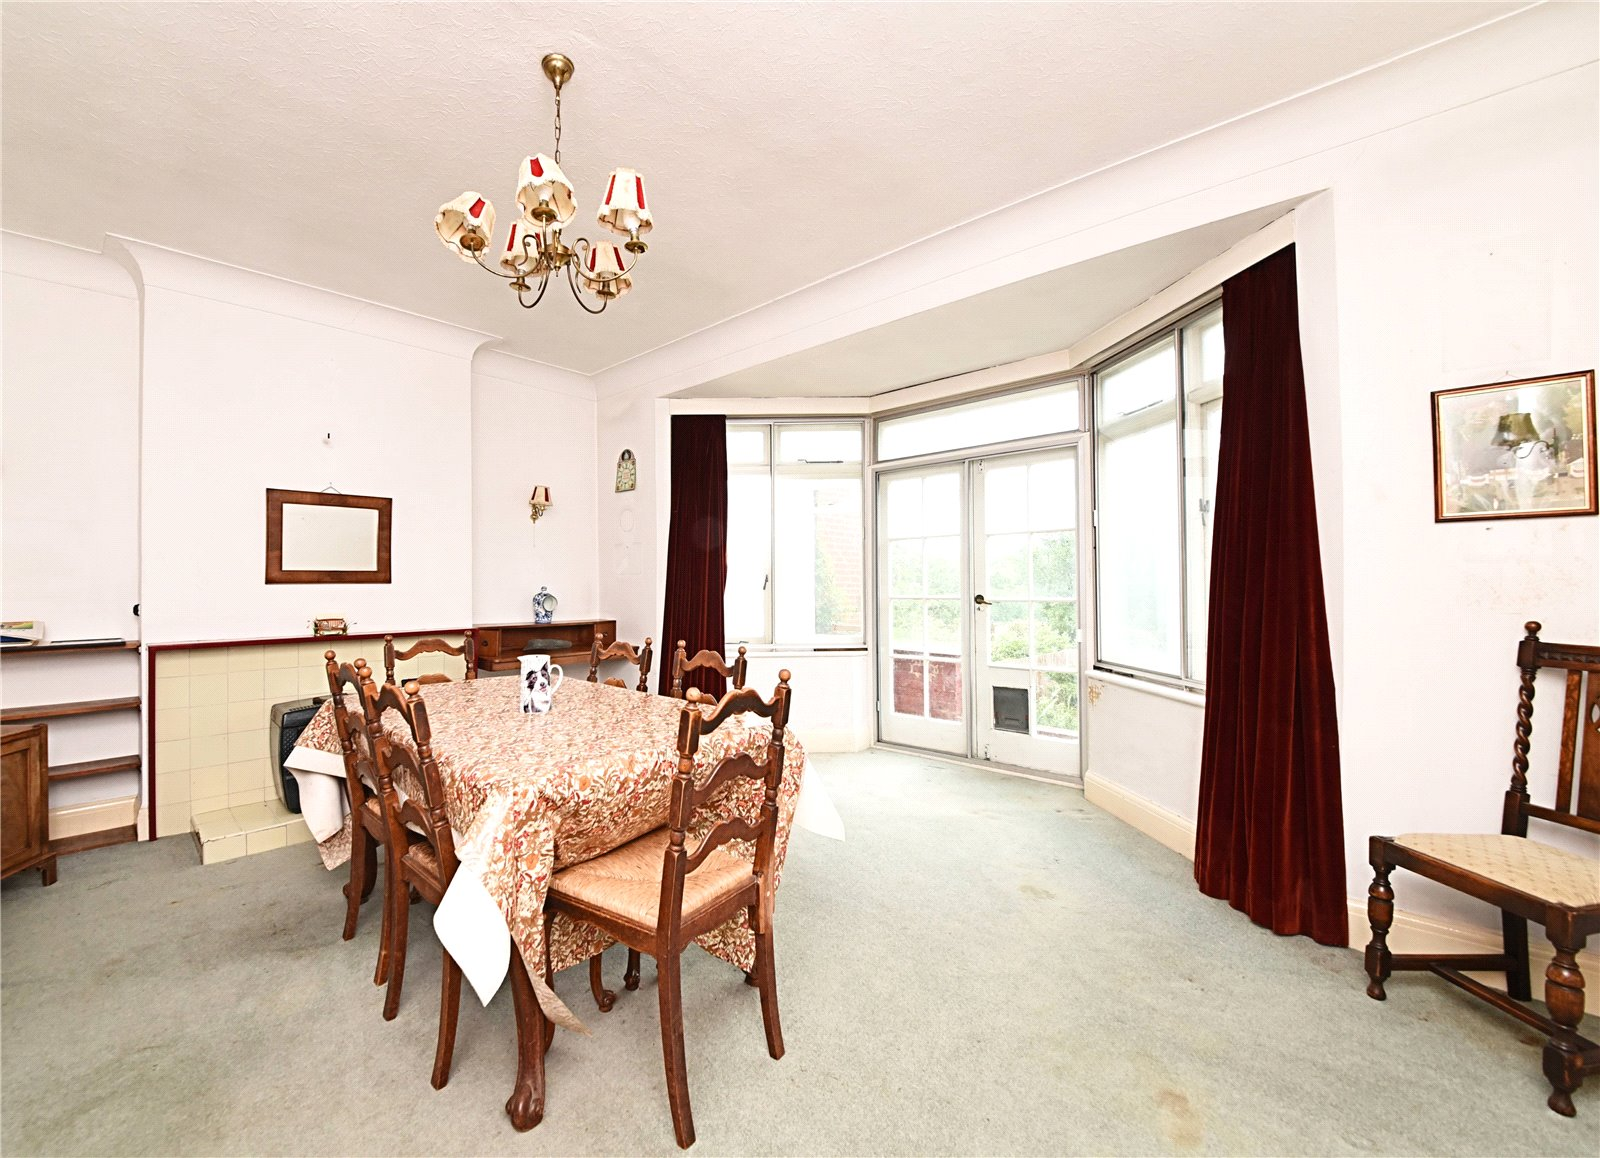 4 bed house for sale in Totteridge, N20 8QR  - Property Image 3